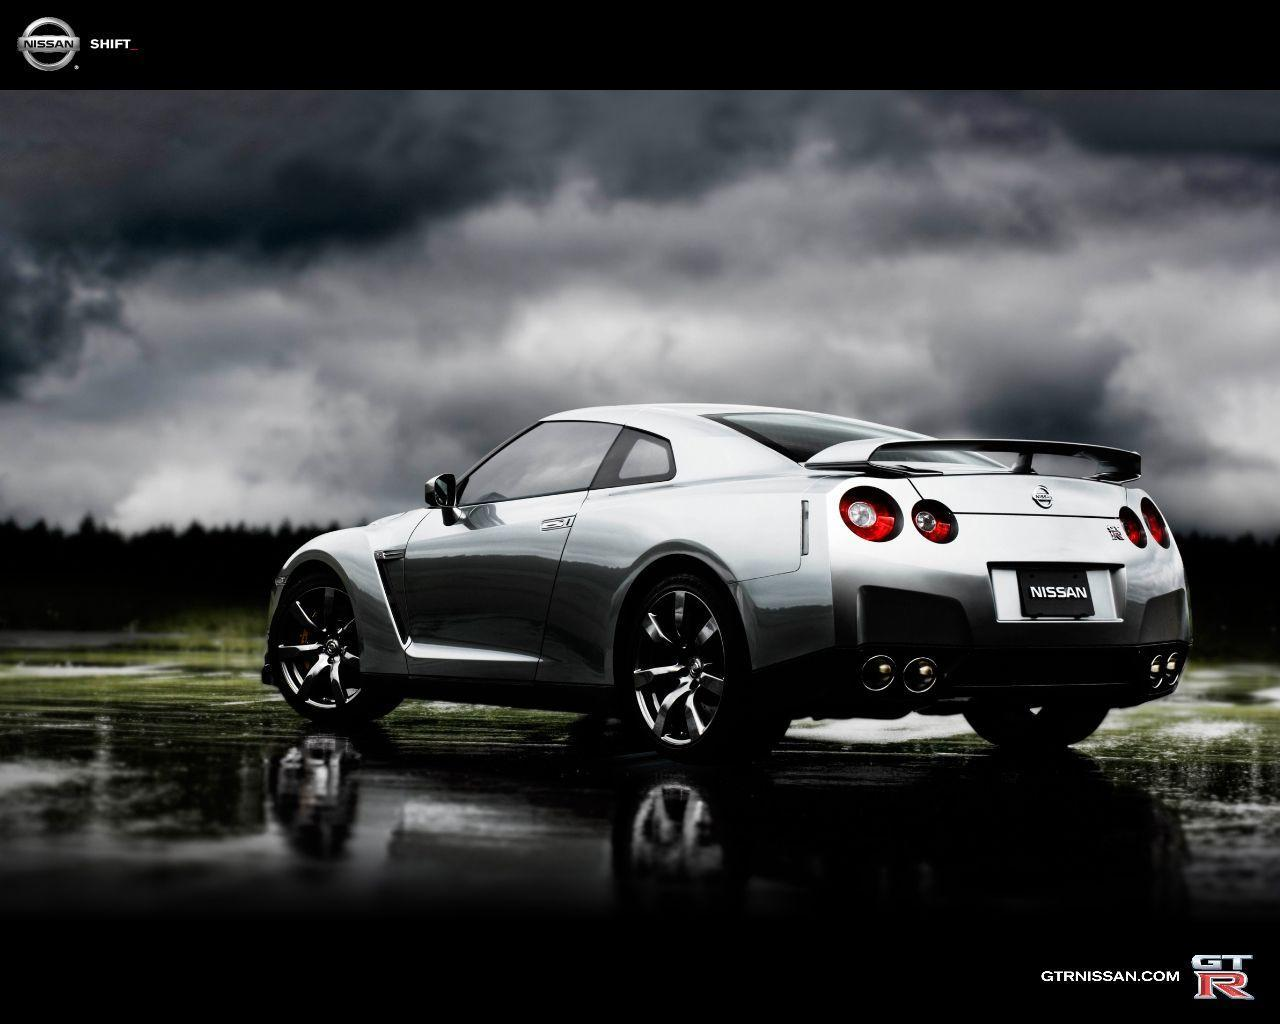 Nissan GT-R wallpaper | Nissan GT-R wallpaper